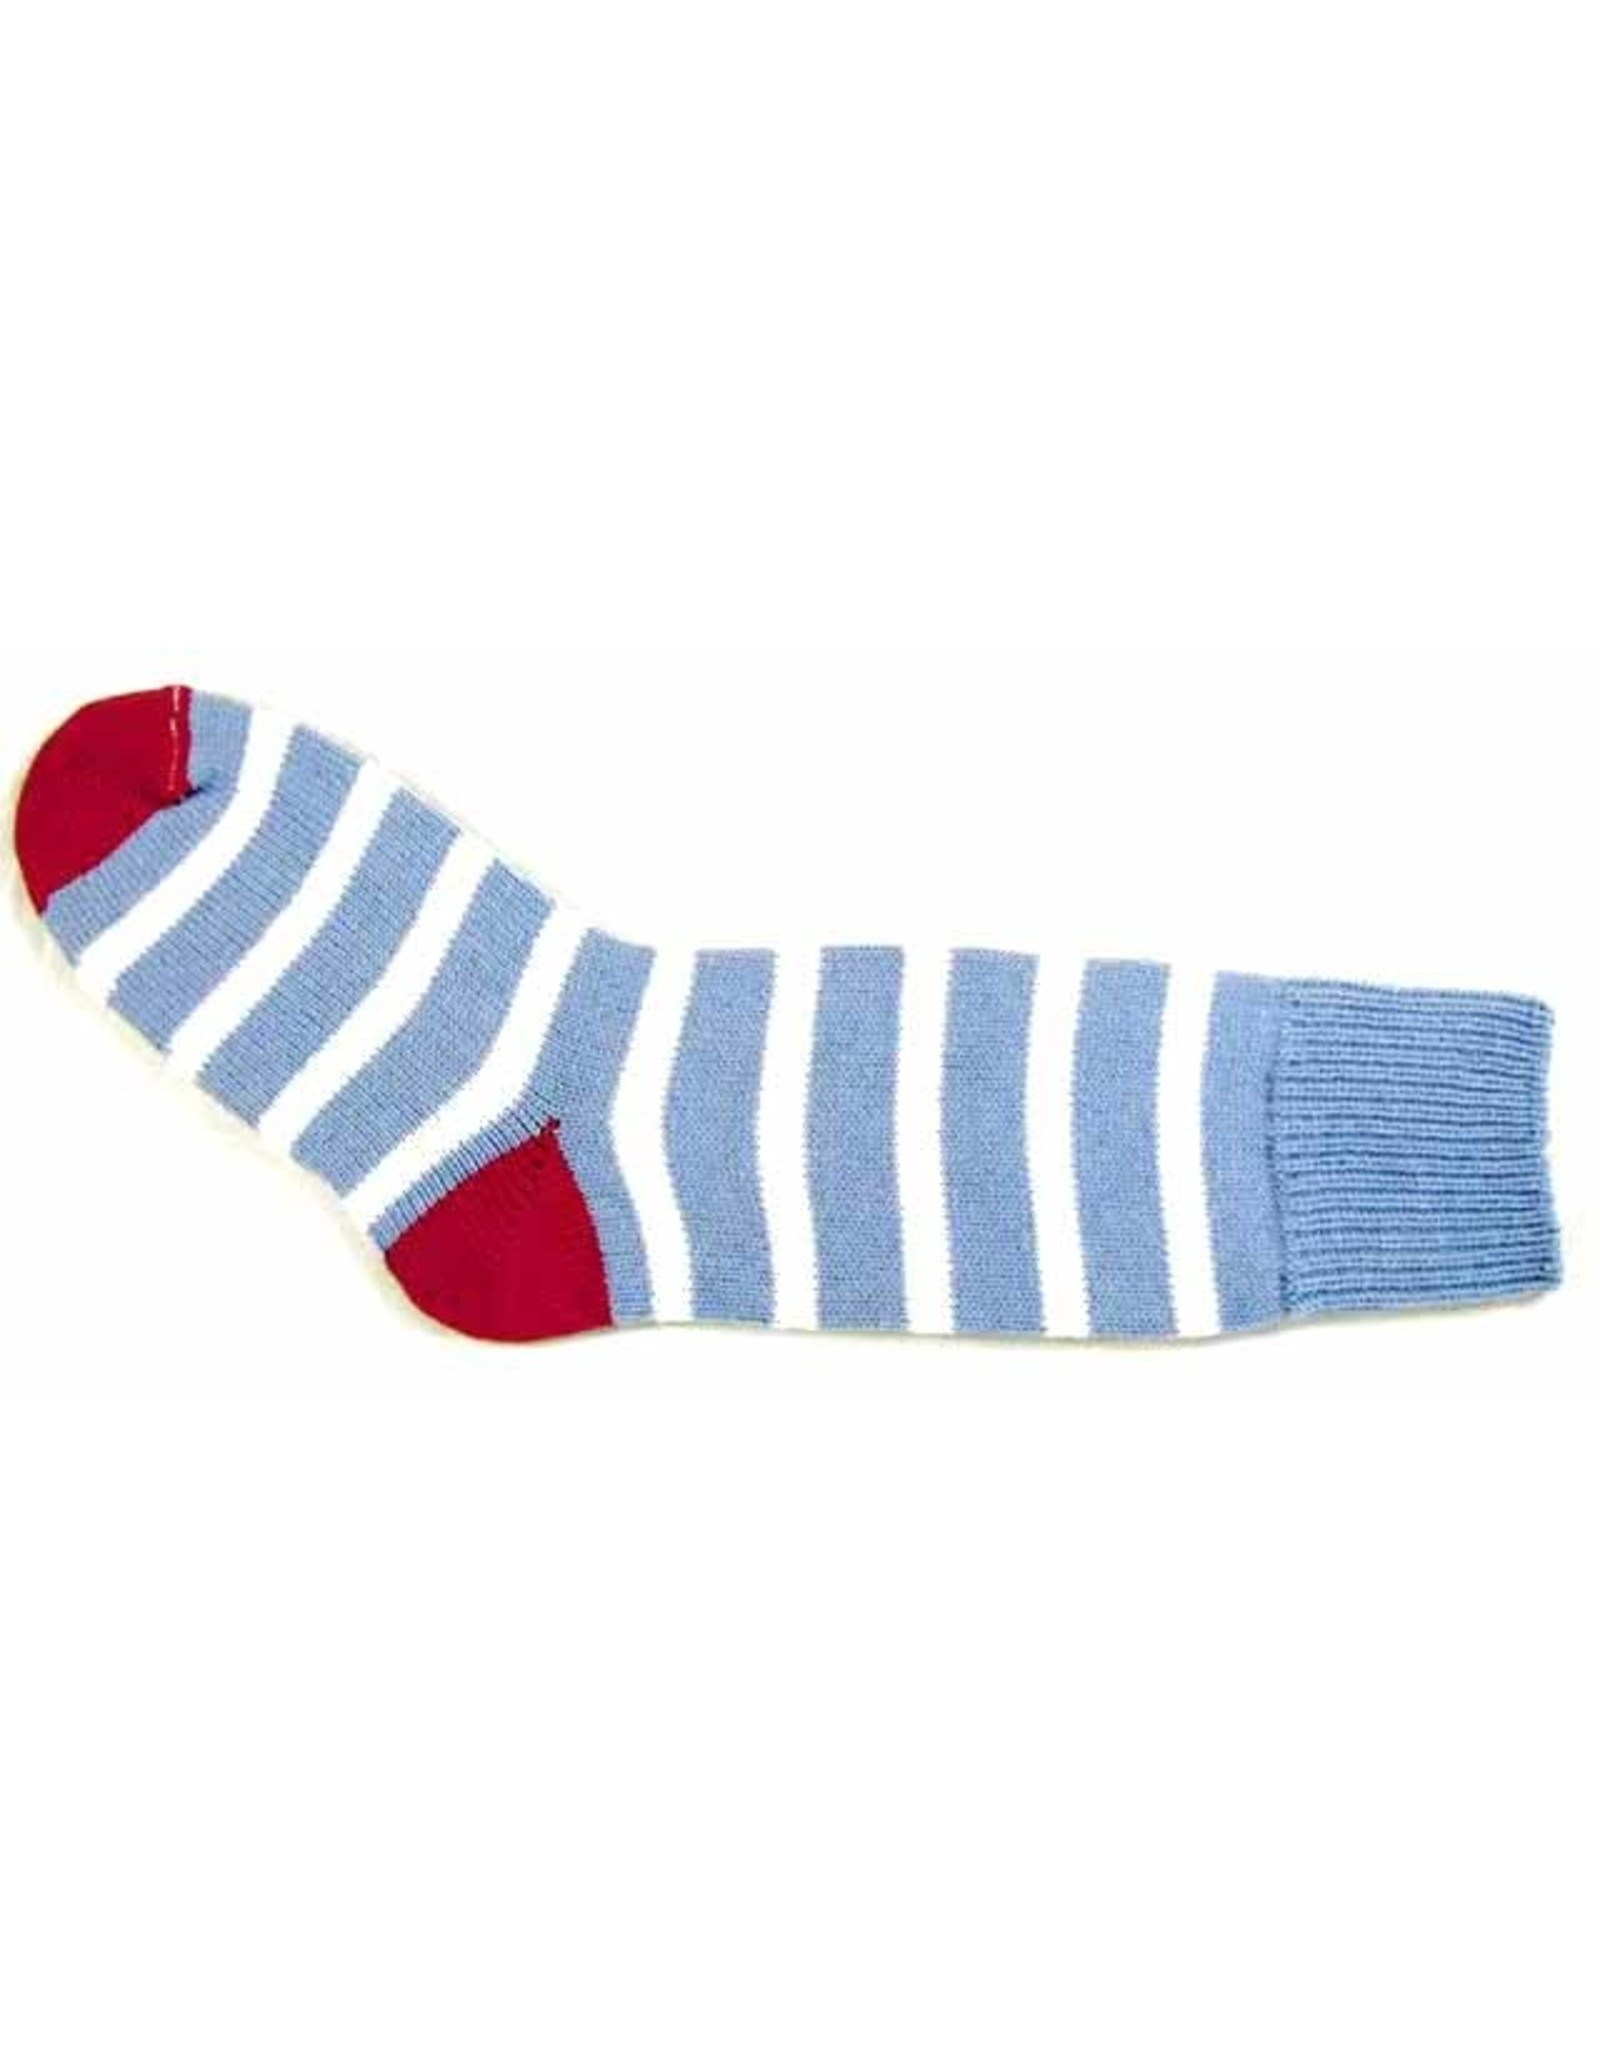 Bas de laine & mot coquin - Socks The Thinker (Blue/White and Pink)